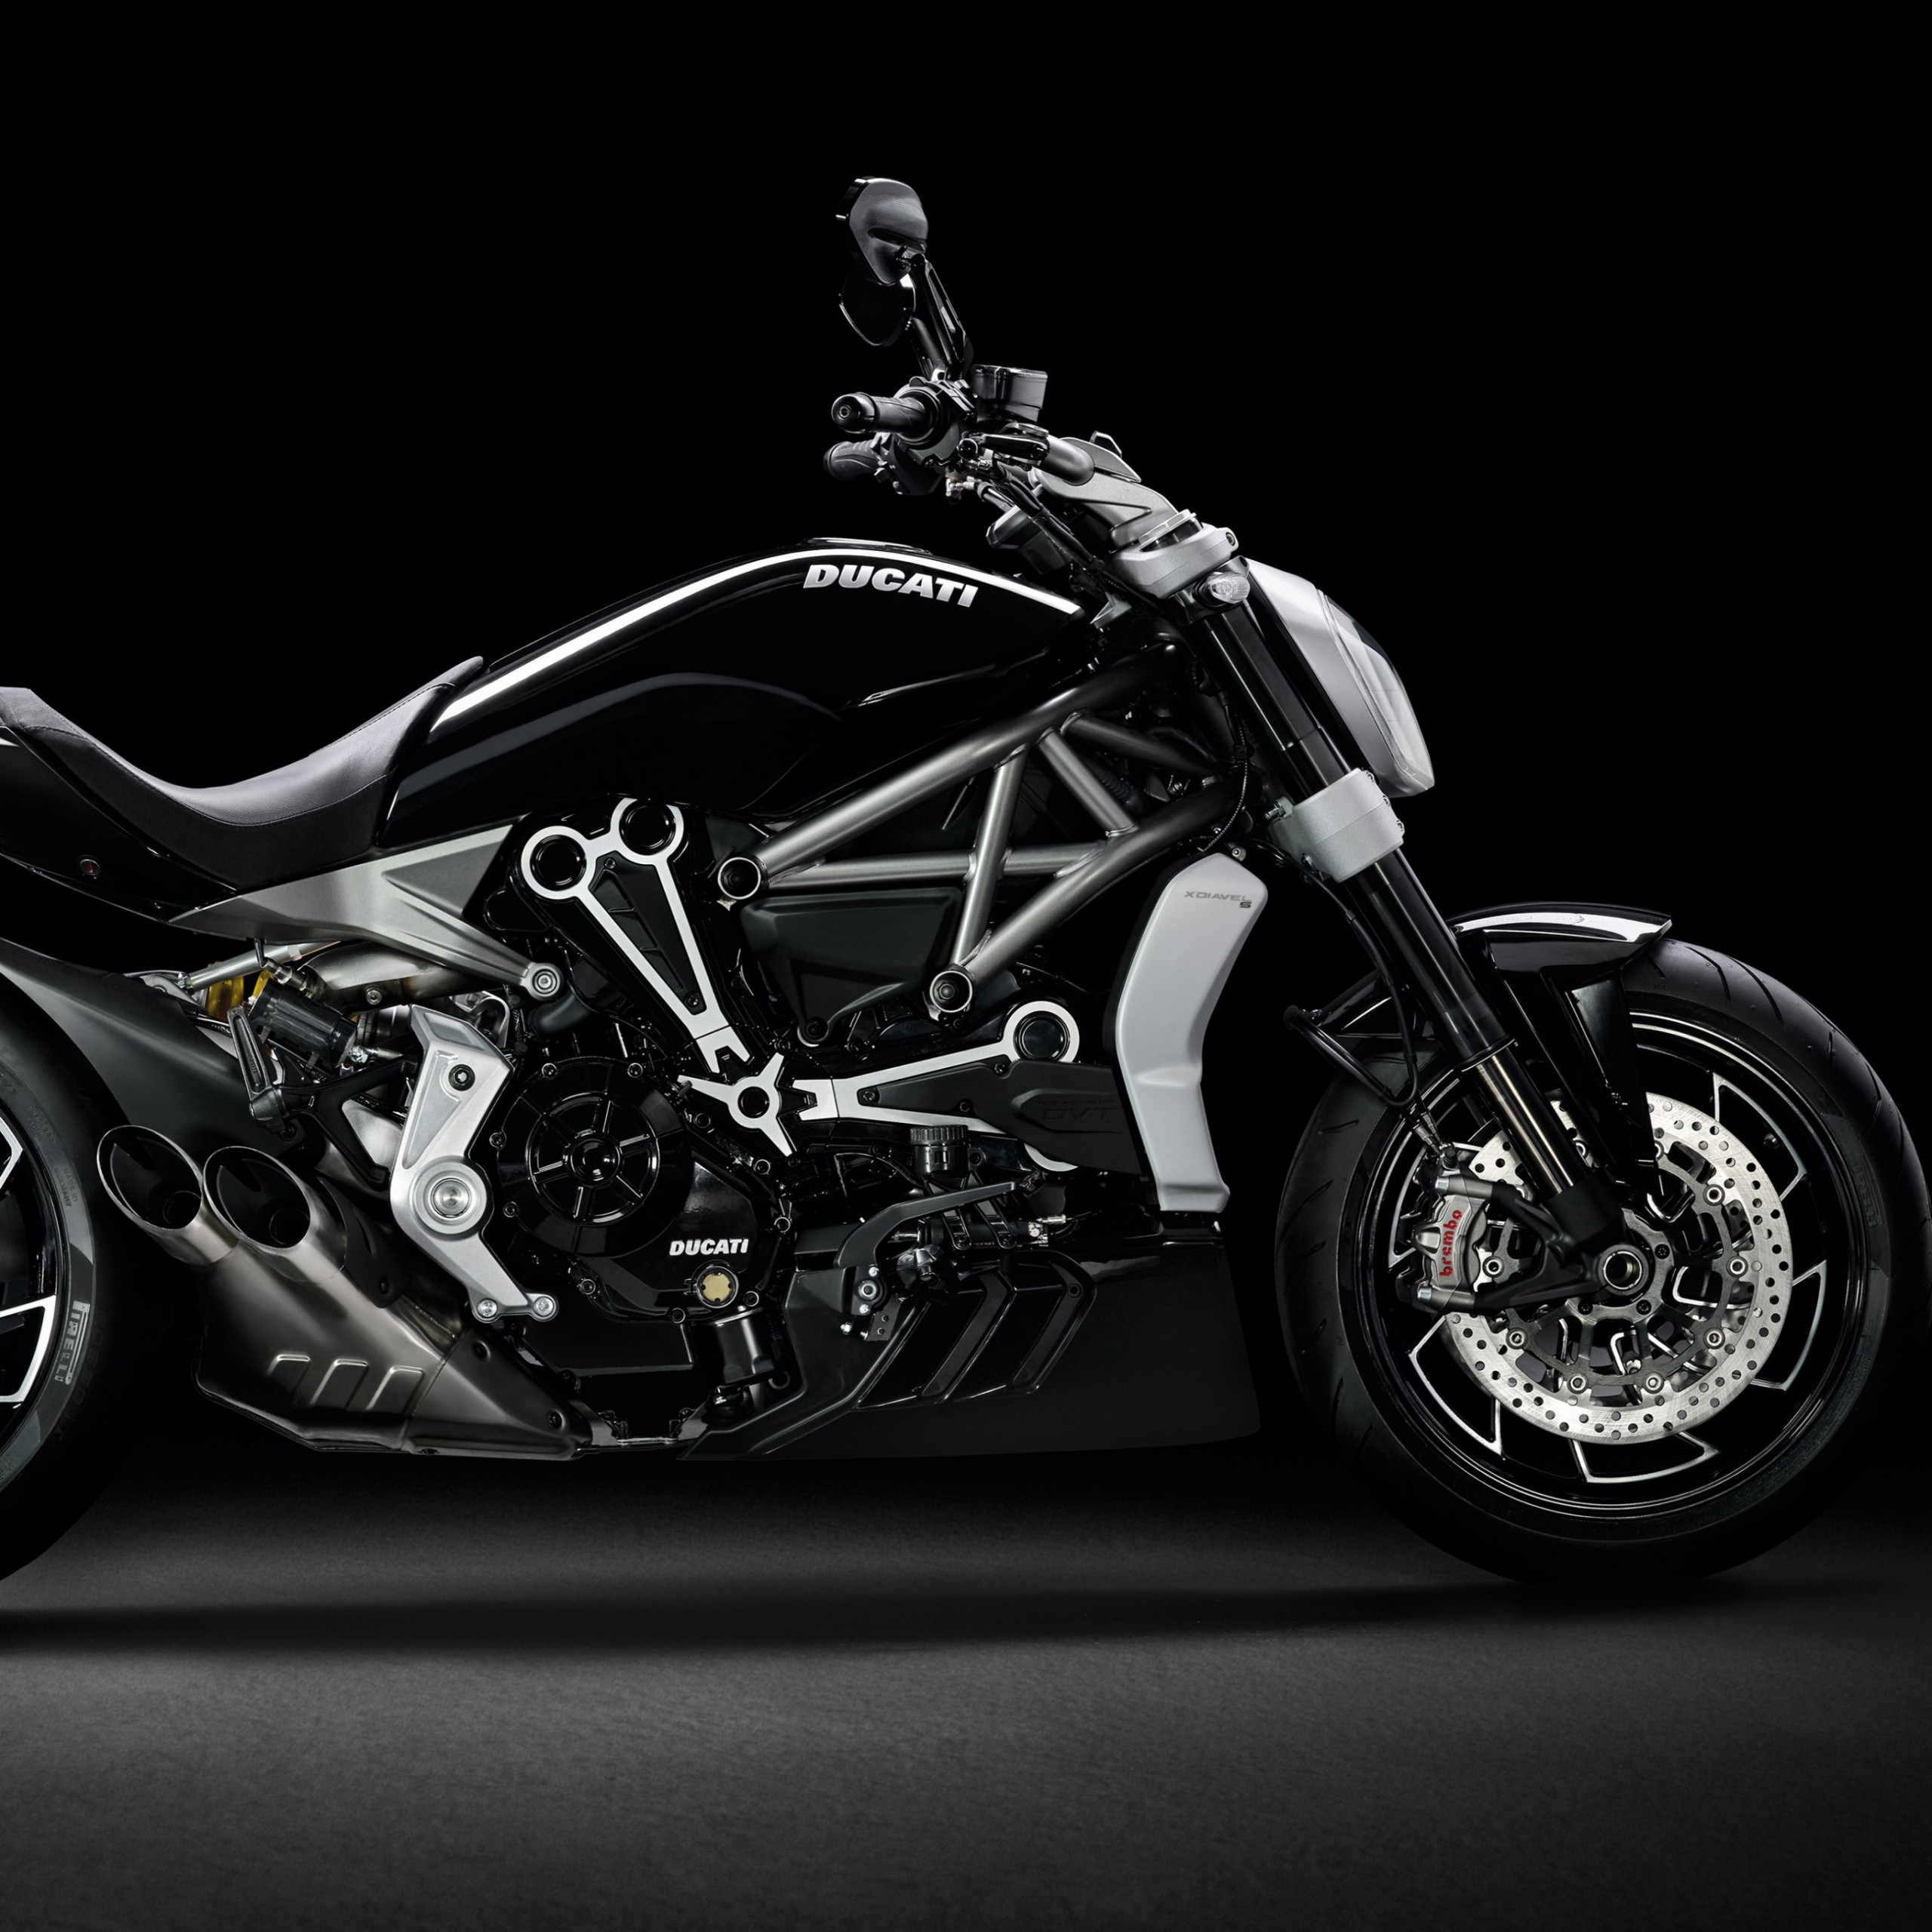 ducati xdiavel s cruiser motorcycle dark background 2732x2732 2914